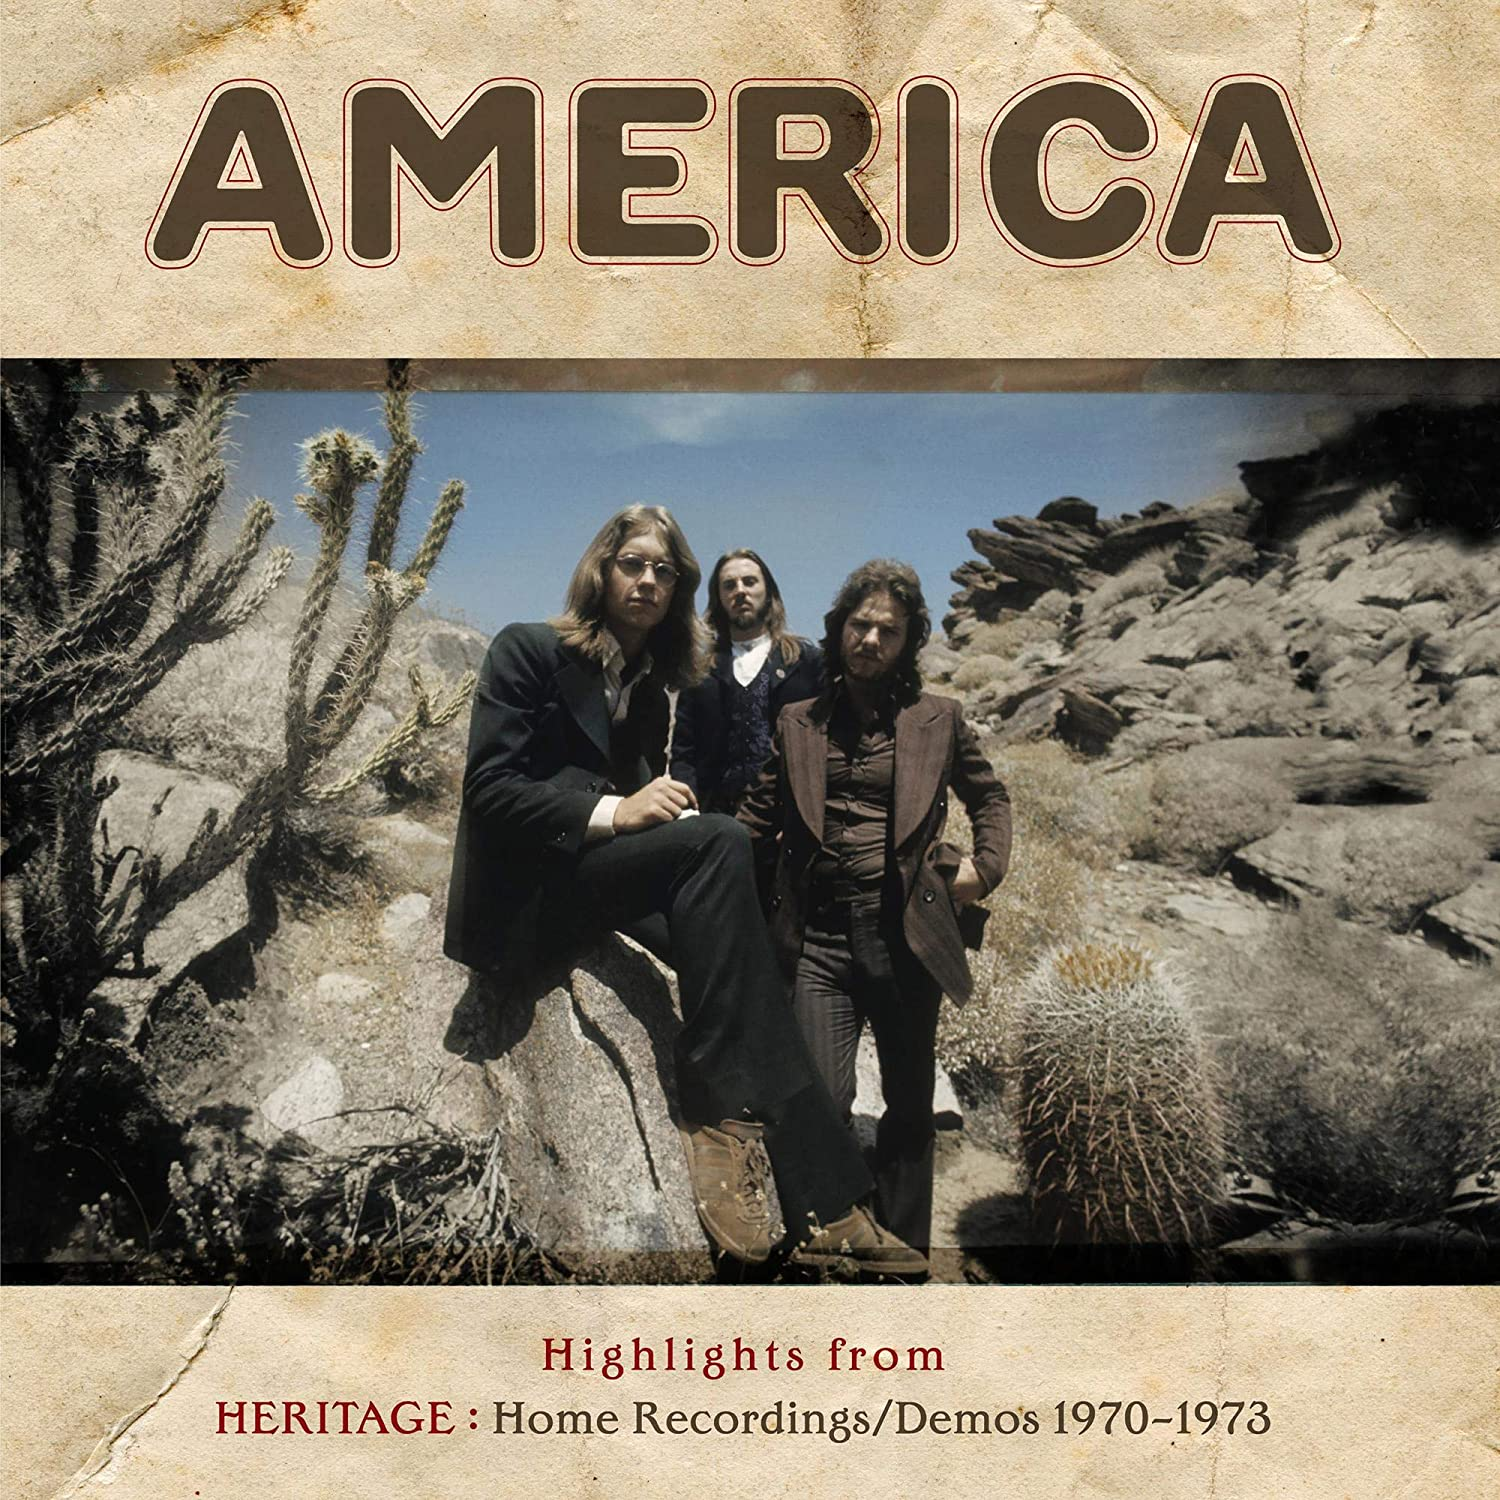 Highlights From Heritage: Home Recordings/Demos 1970-1973 (Black Friday Exclusive 2018)